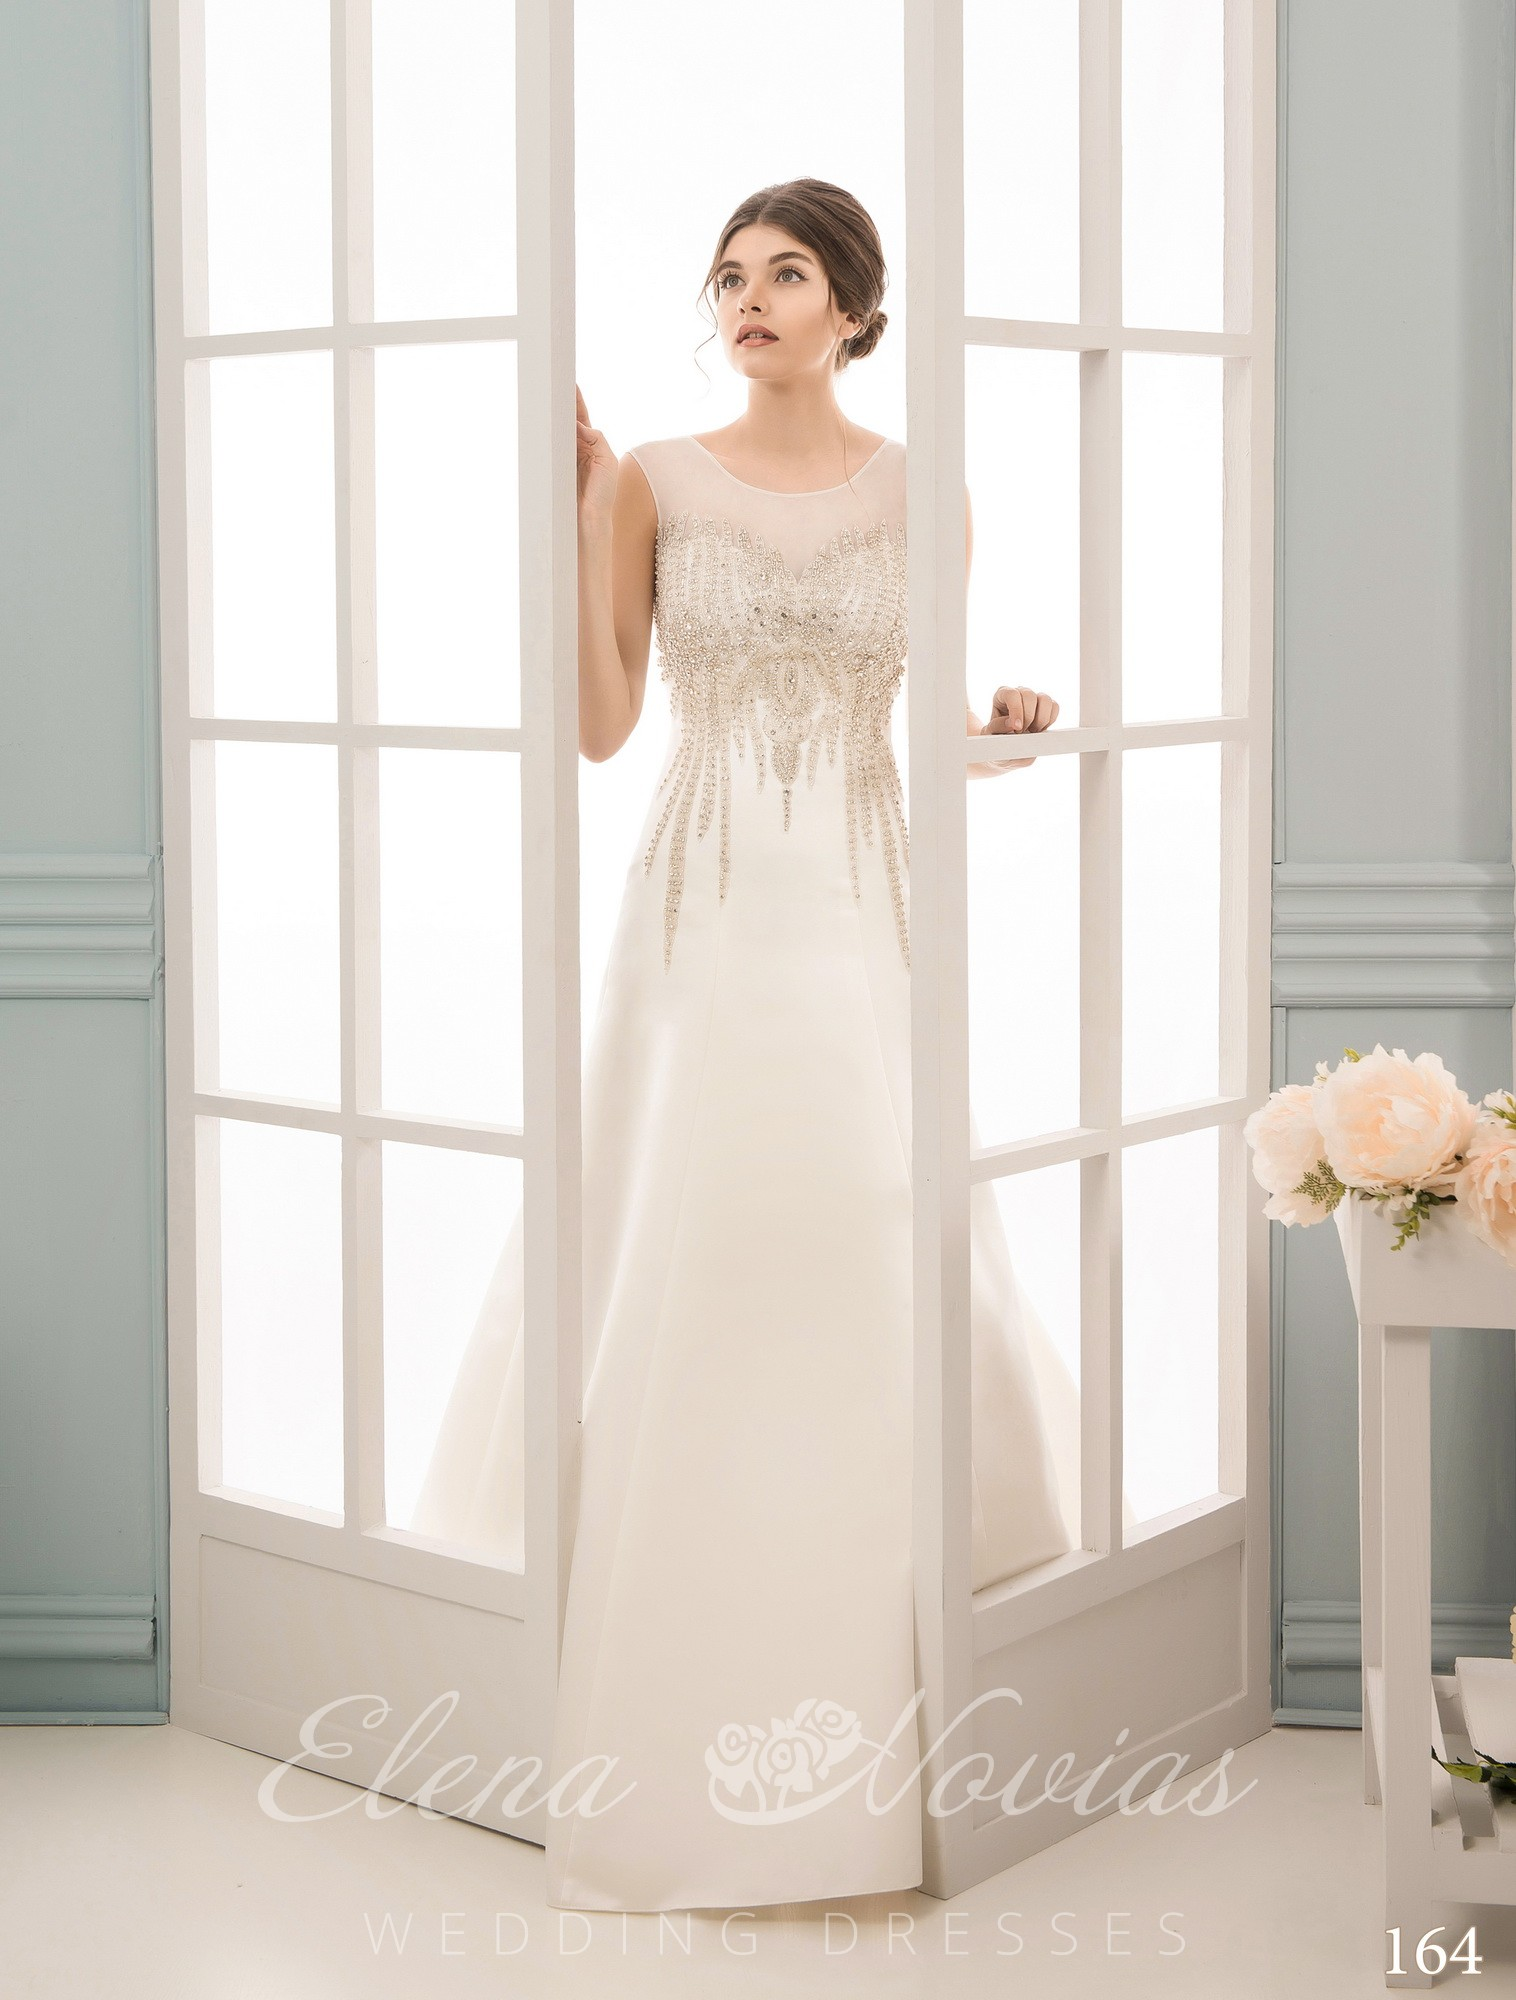 Wedding dress wholesale 164